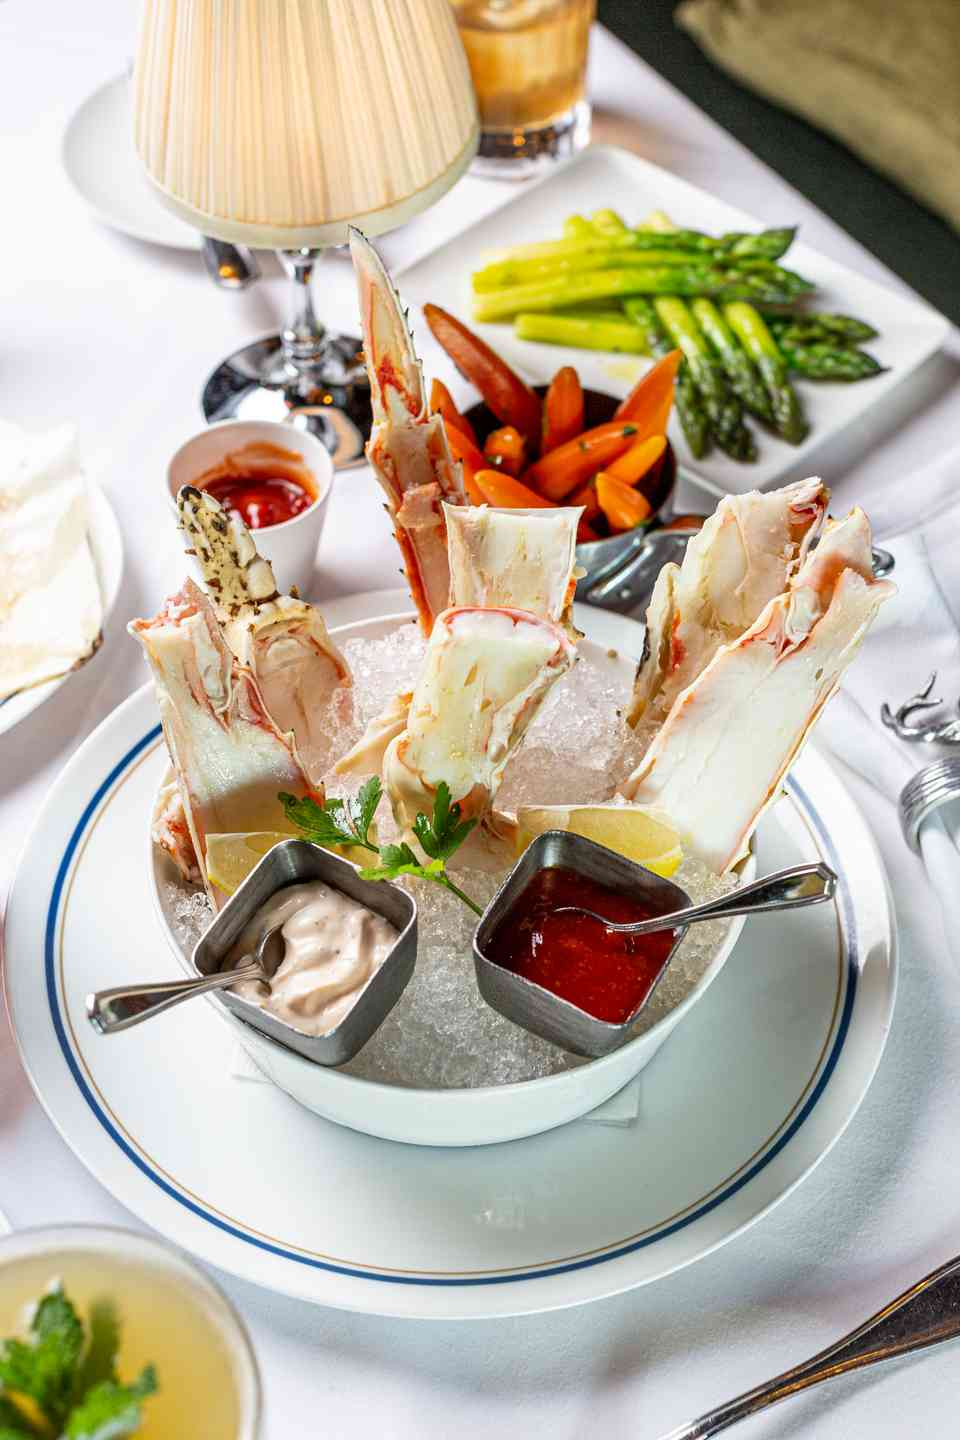 Chilled King Crab Legs